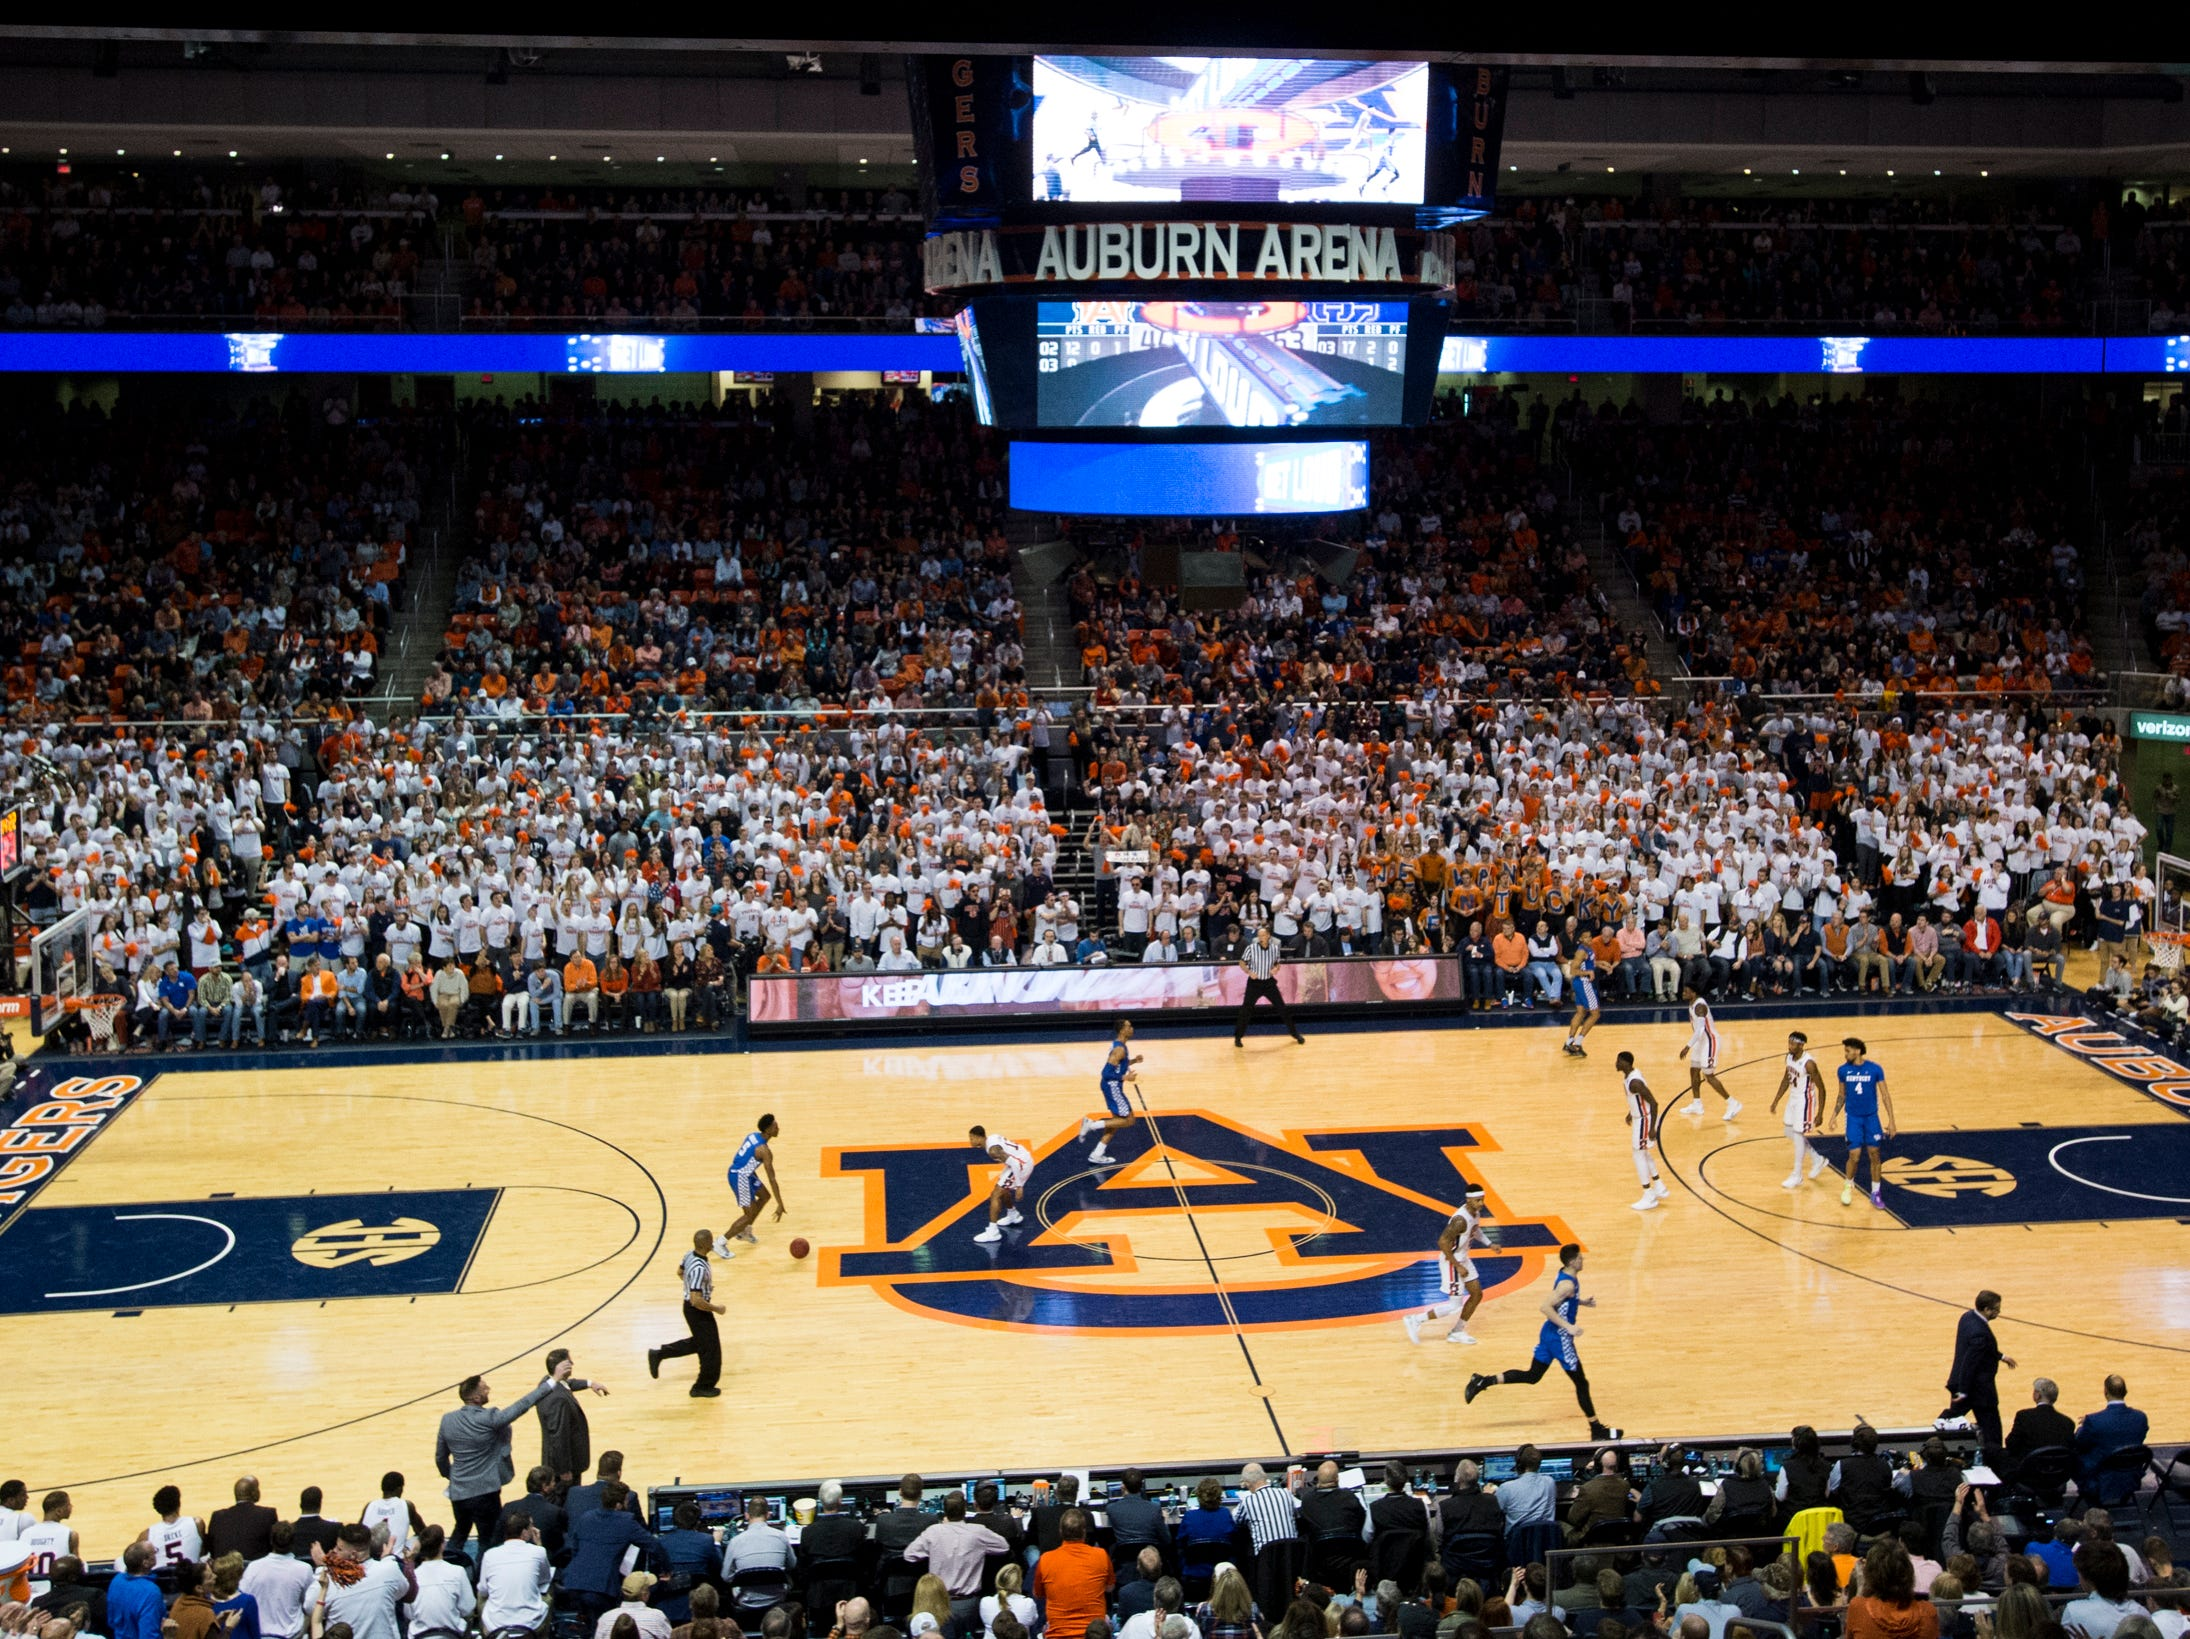 Auburn takes on Kentucky at Auburn Arena in Auburn, Ala., on Saturday, Jan. 19, 2019. Kentucky defeats Auburn 82-80.